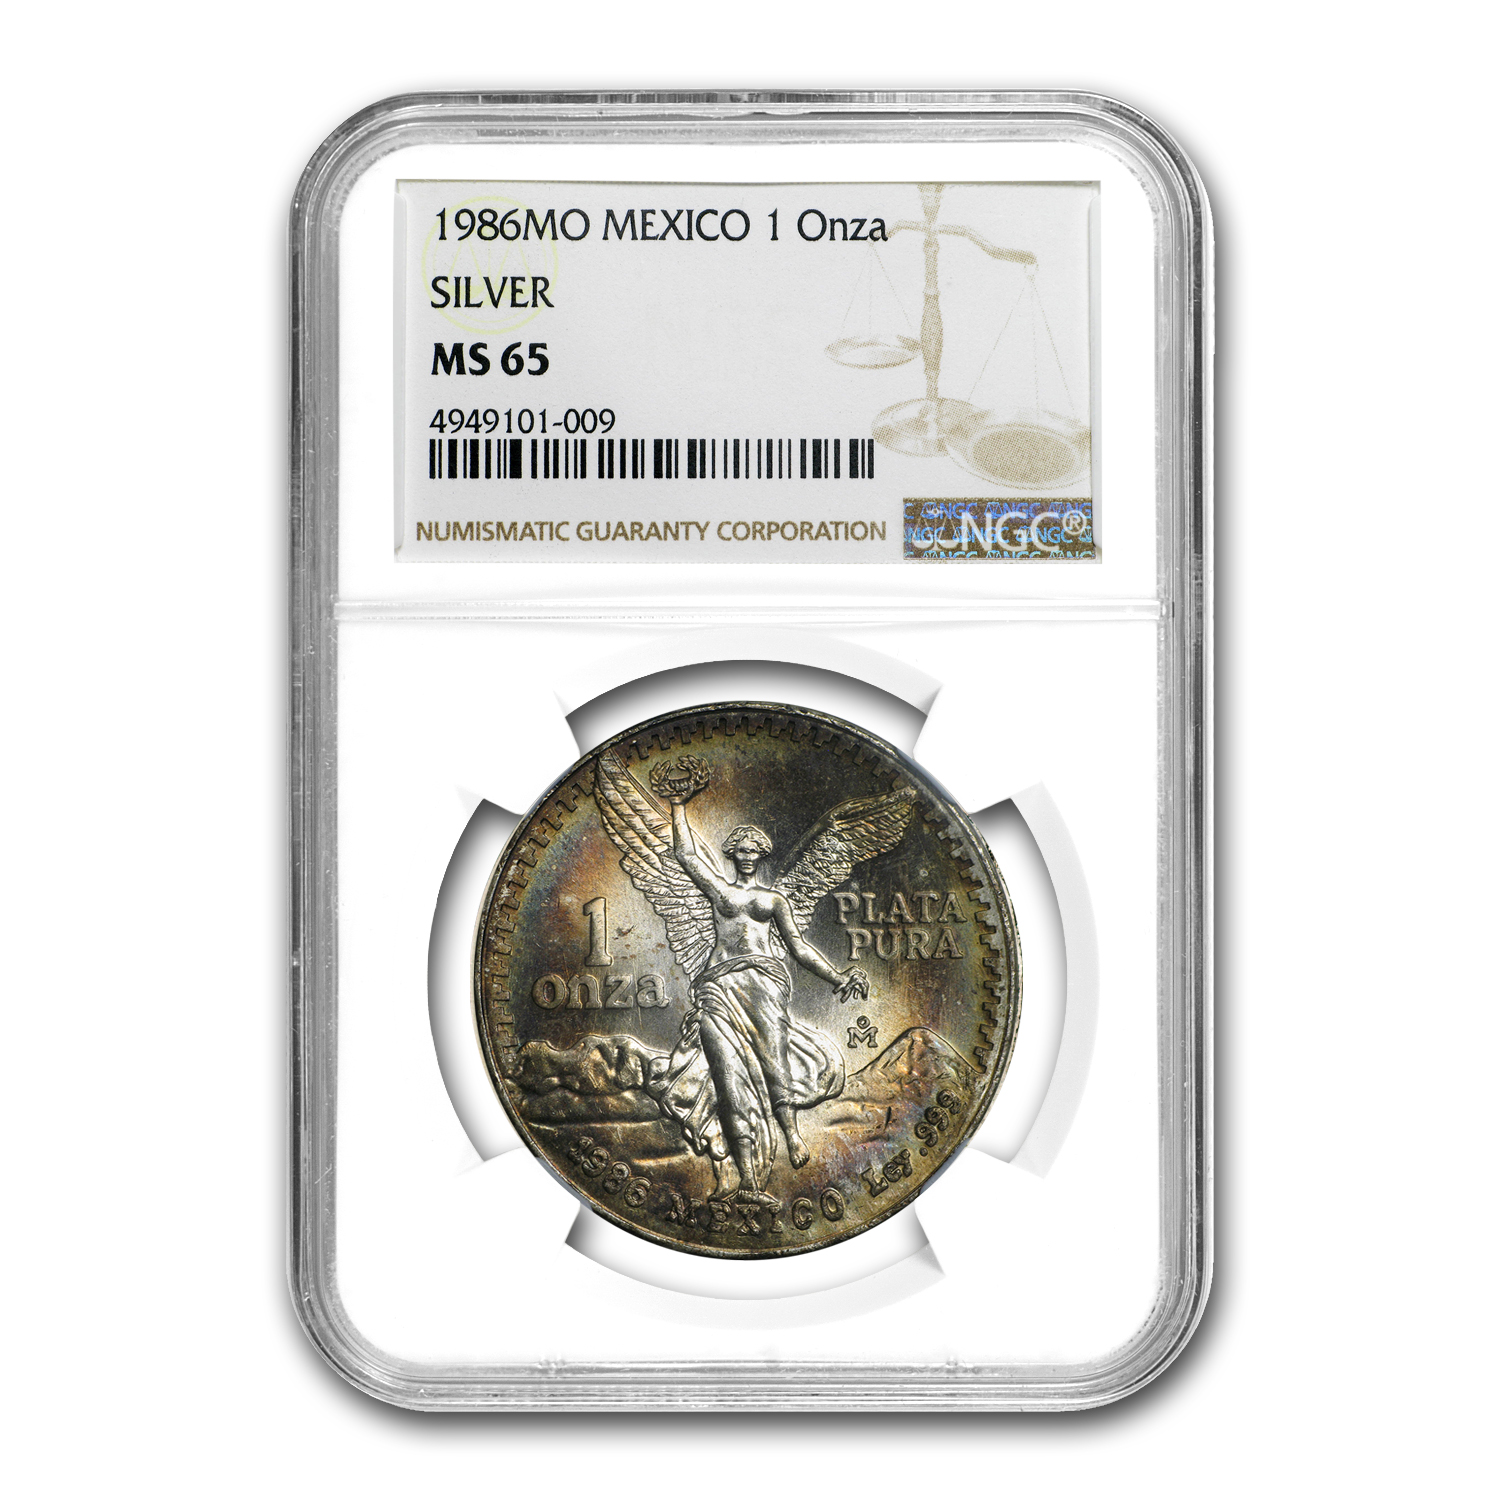 1986 Mexico 1 oz Silver Libertad MS-65 NGC (Beautiful Toned Obv)